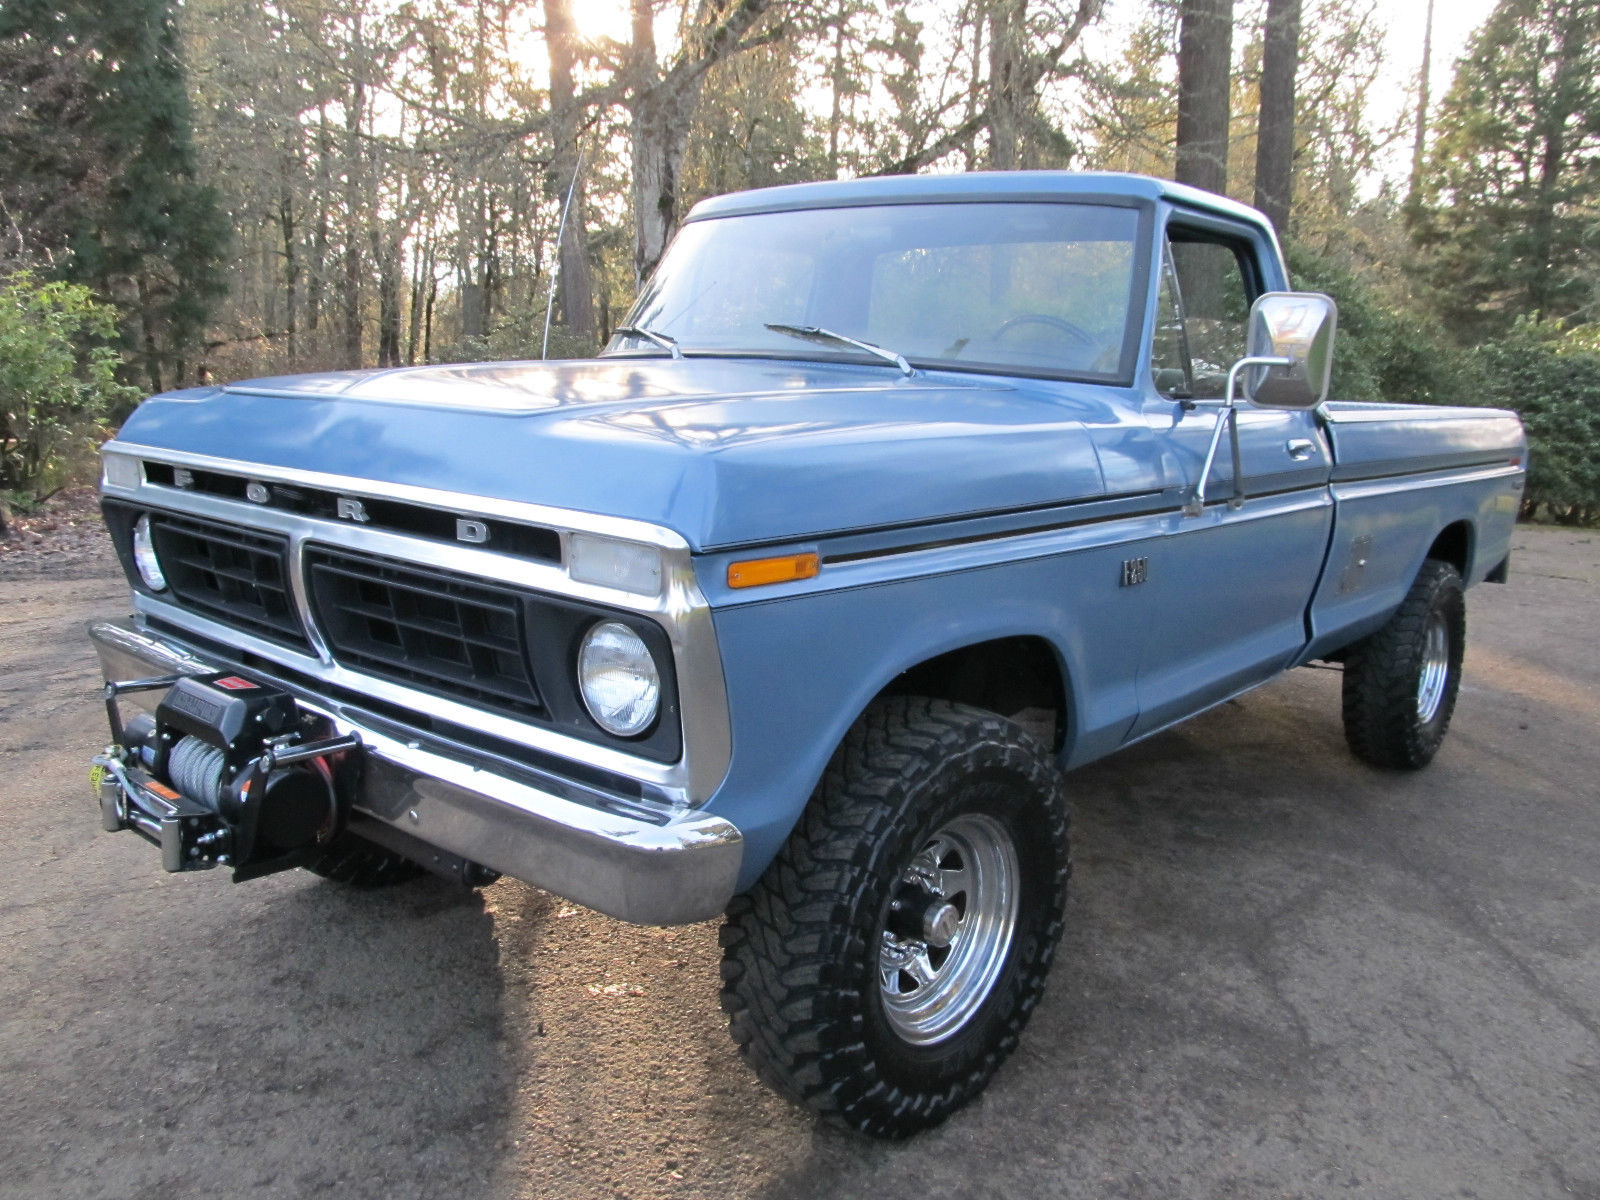 1973 Ford 4x4 Front Axle : Ford f highboy classic for sale